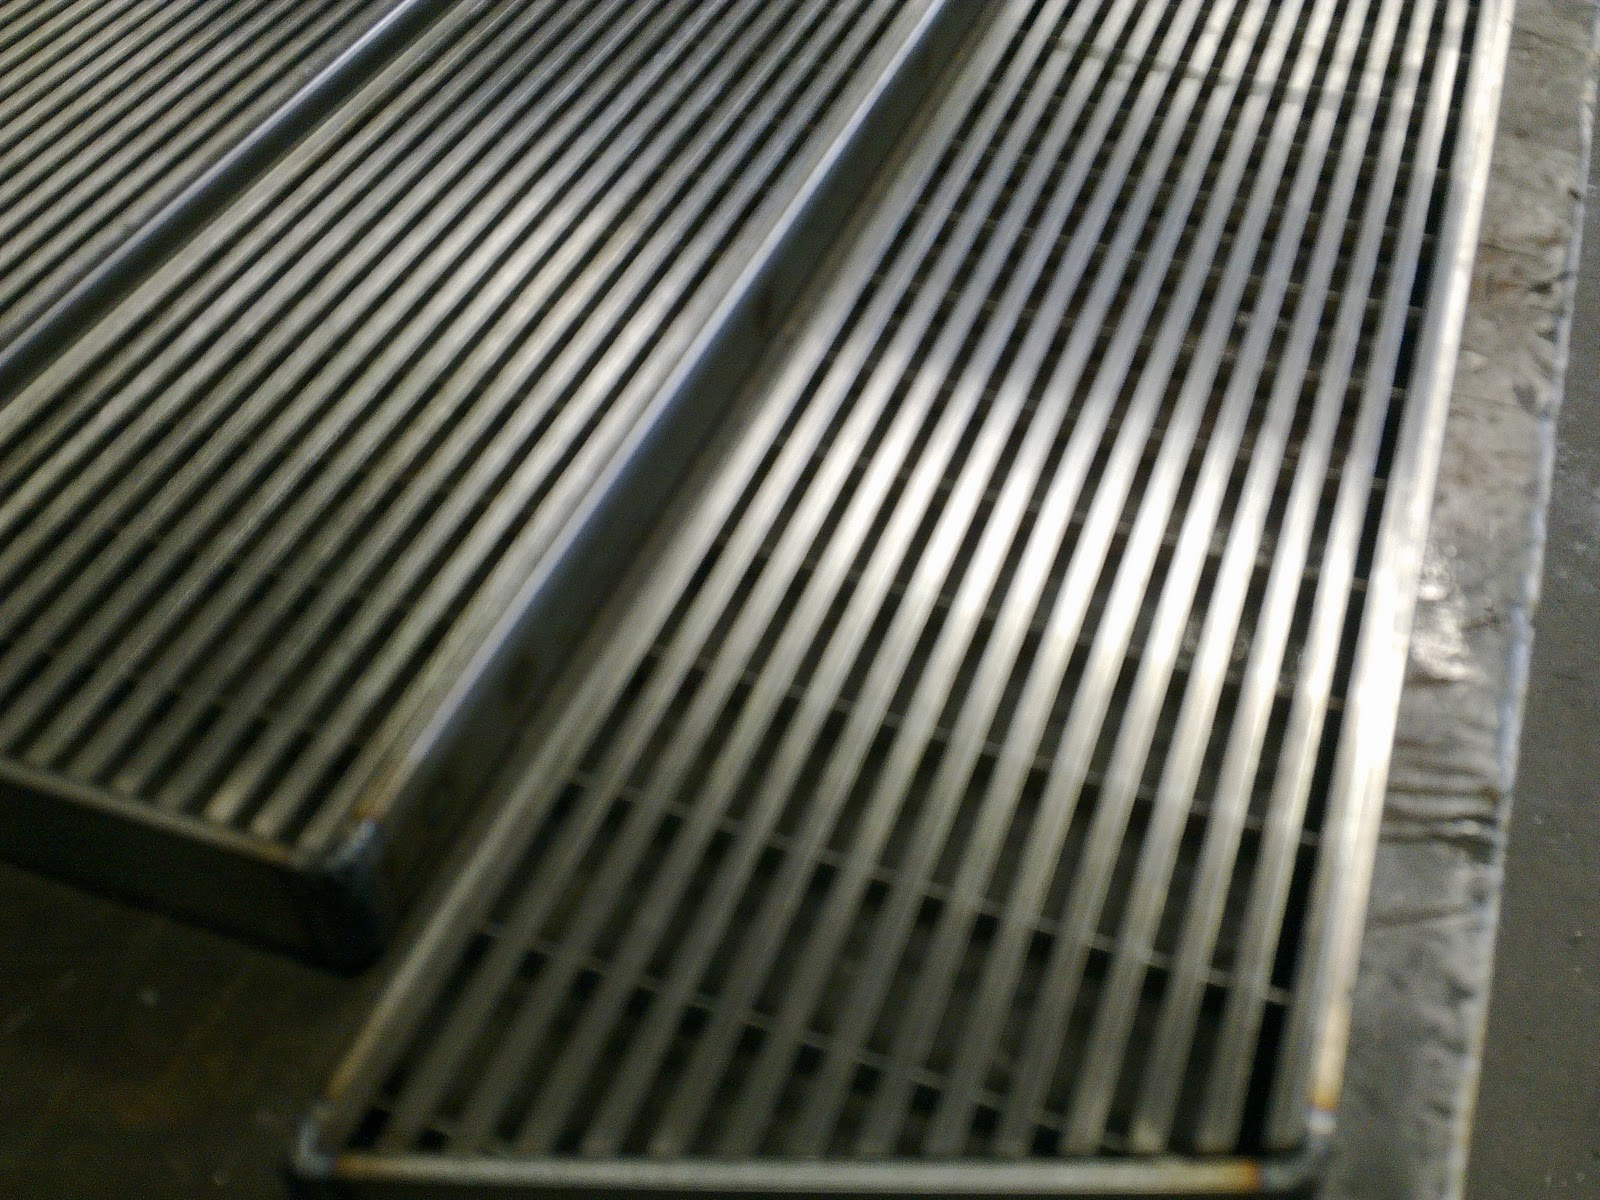 Commercial Stainless Steel Display